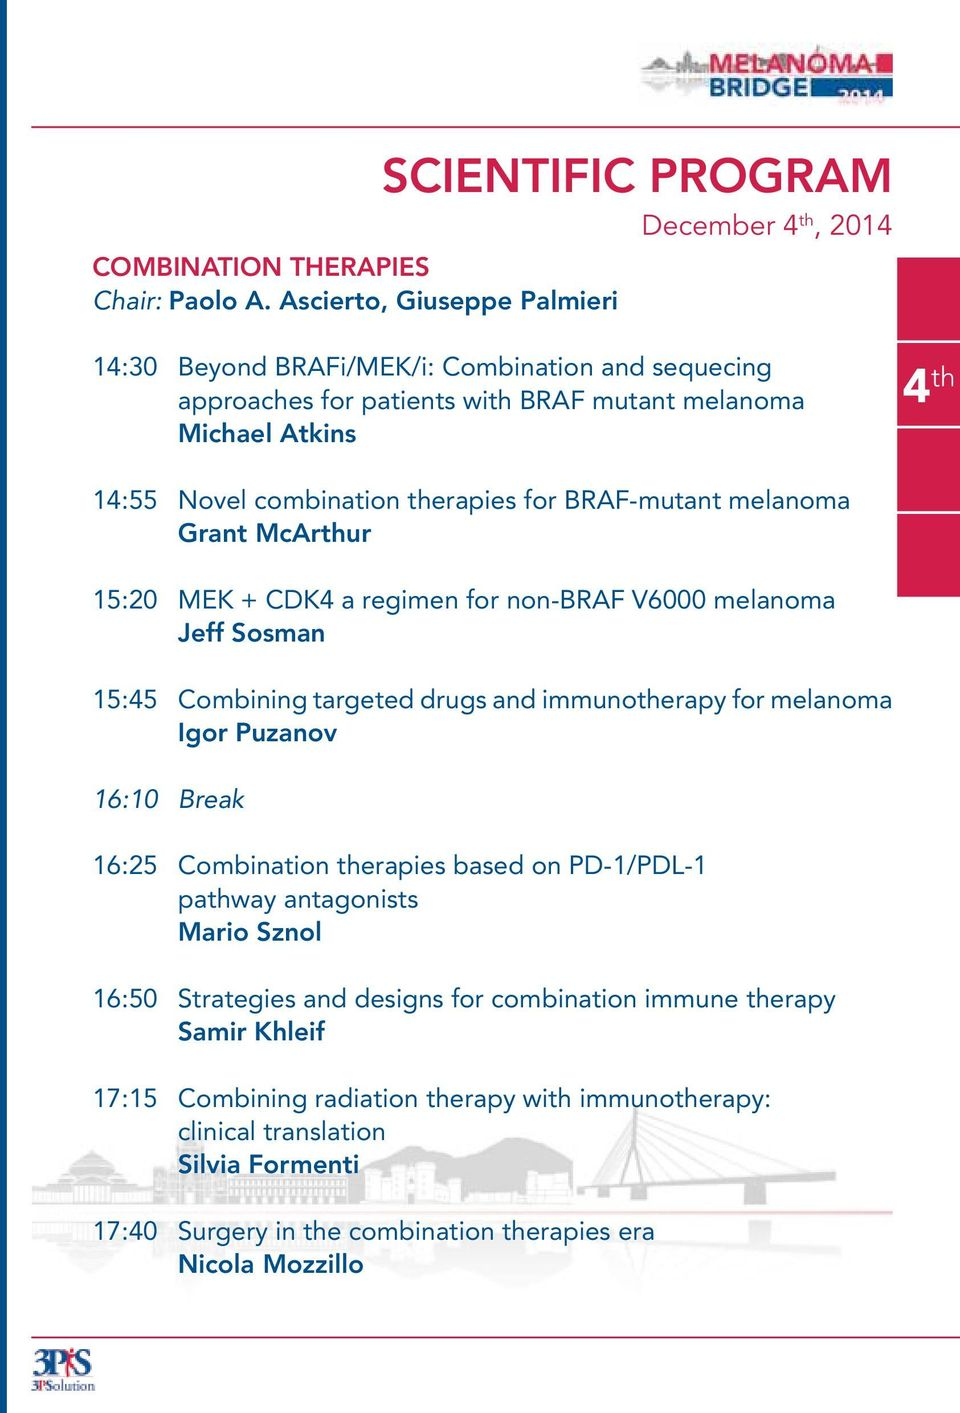 14:55 Novel combination therapies for BRAF-mutant melanoma Grant McArthur 15:20 MEK + CDK4 a regimen for non-braf V6000 melanoma Jeff Sosman 15:45 Combining targeted drugs and immunotherapy